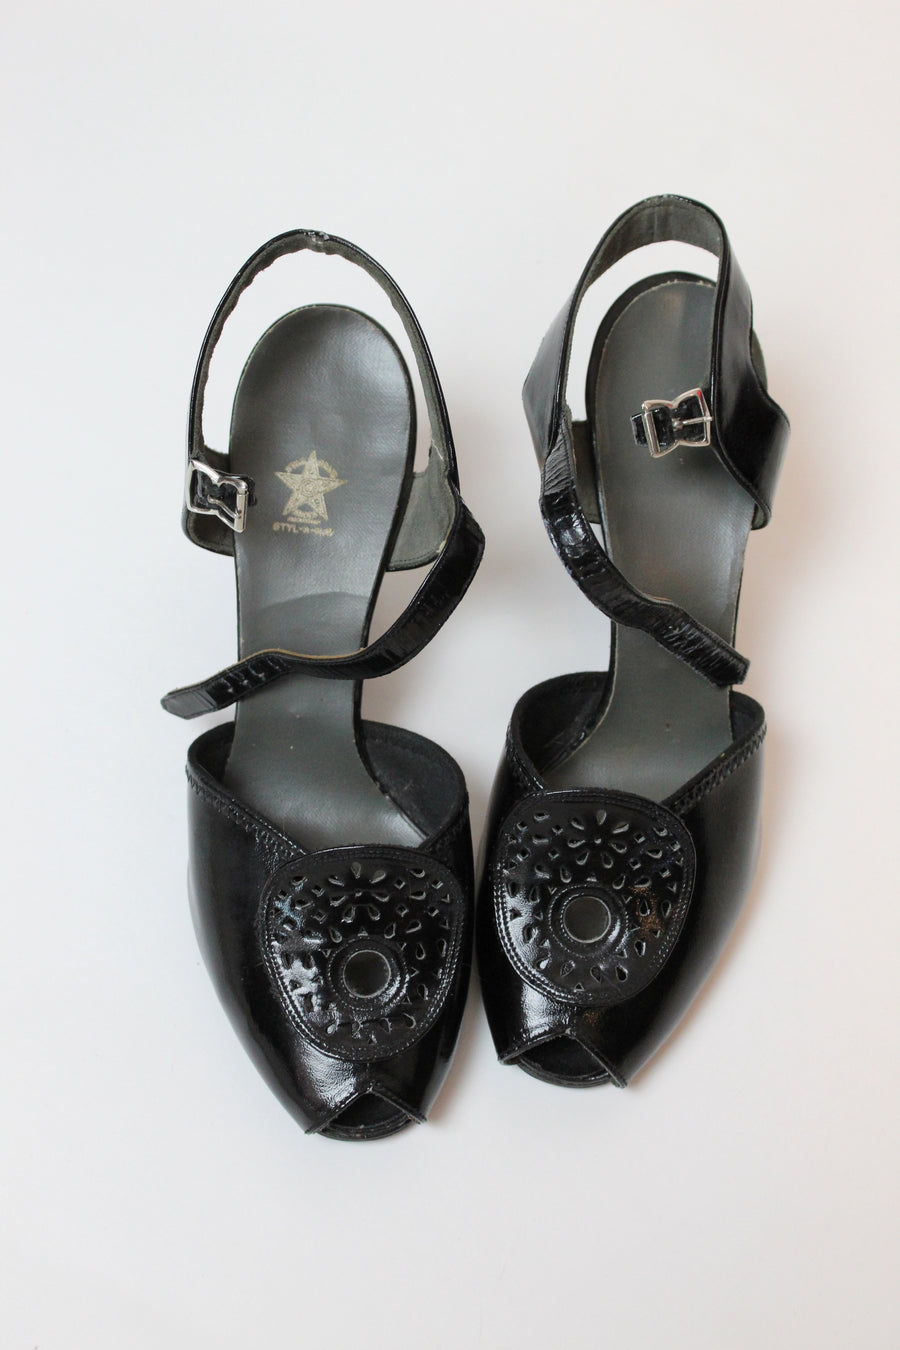 1940s peep toes size size 6 us | vintage star brand mary janes | new in